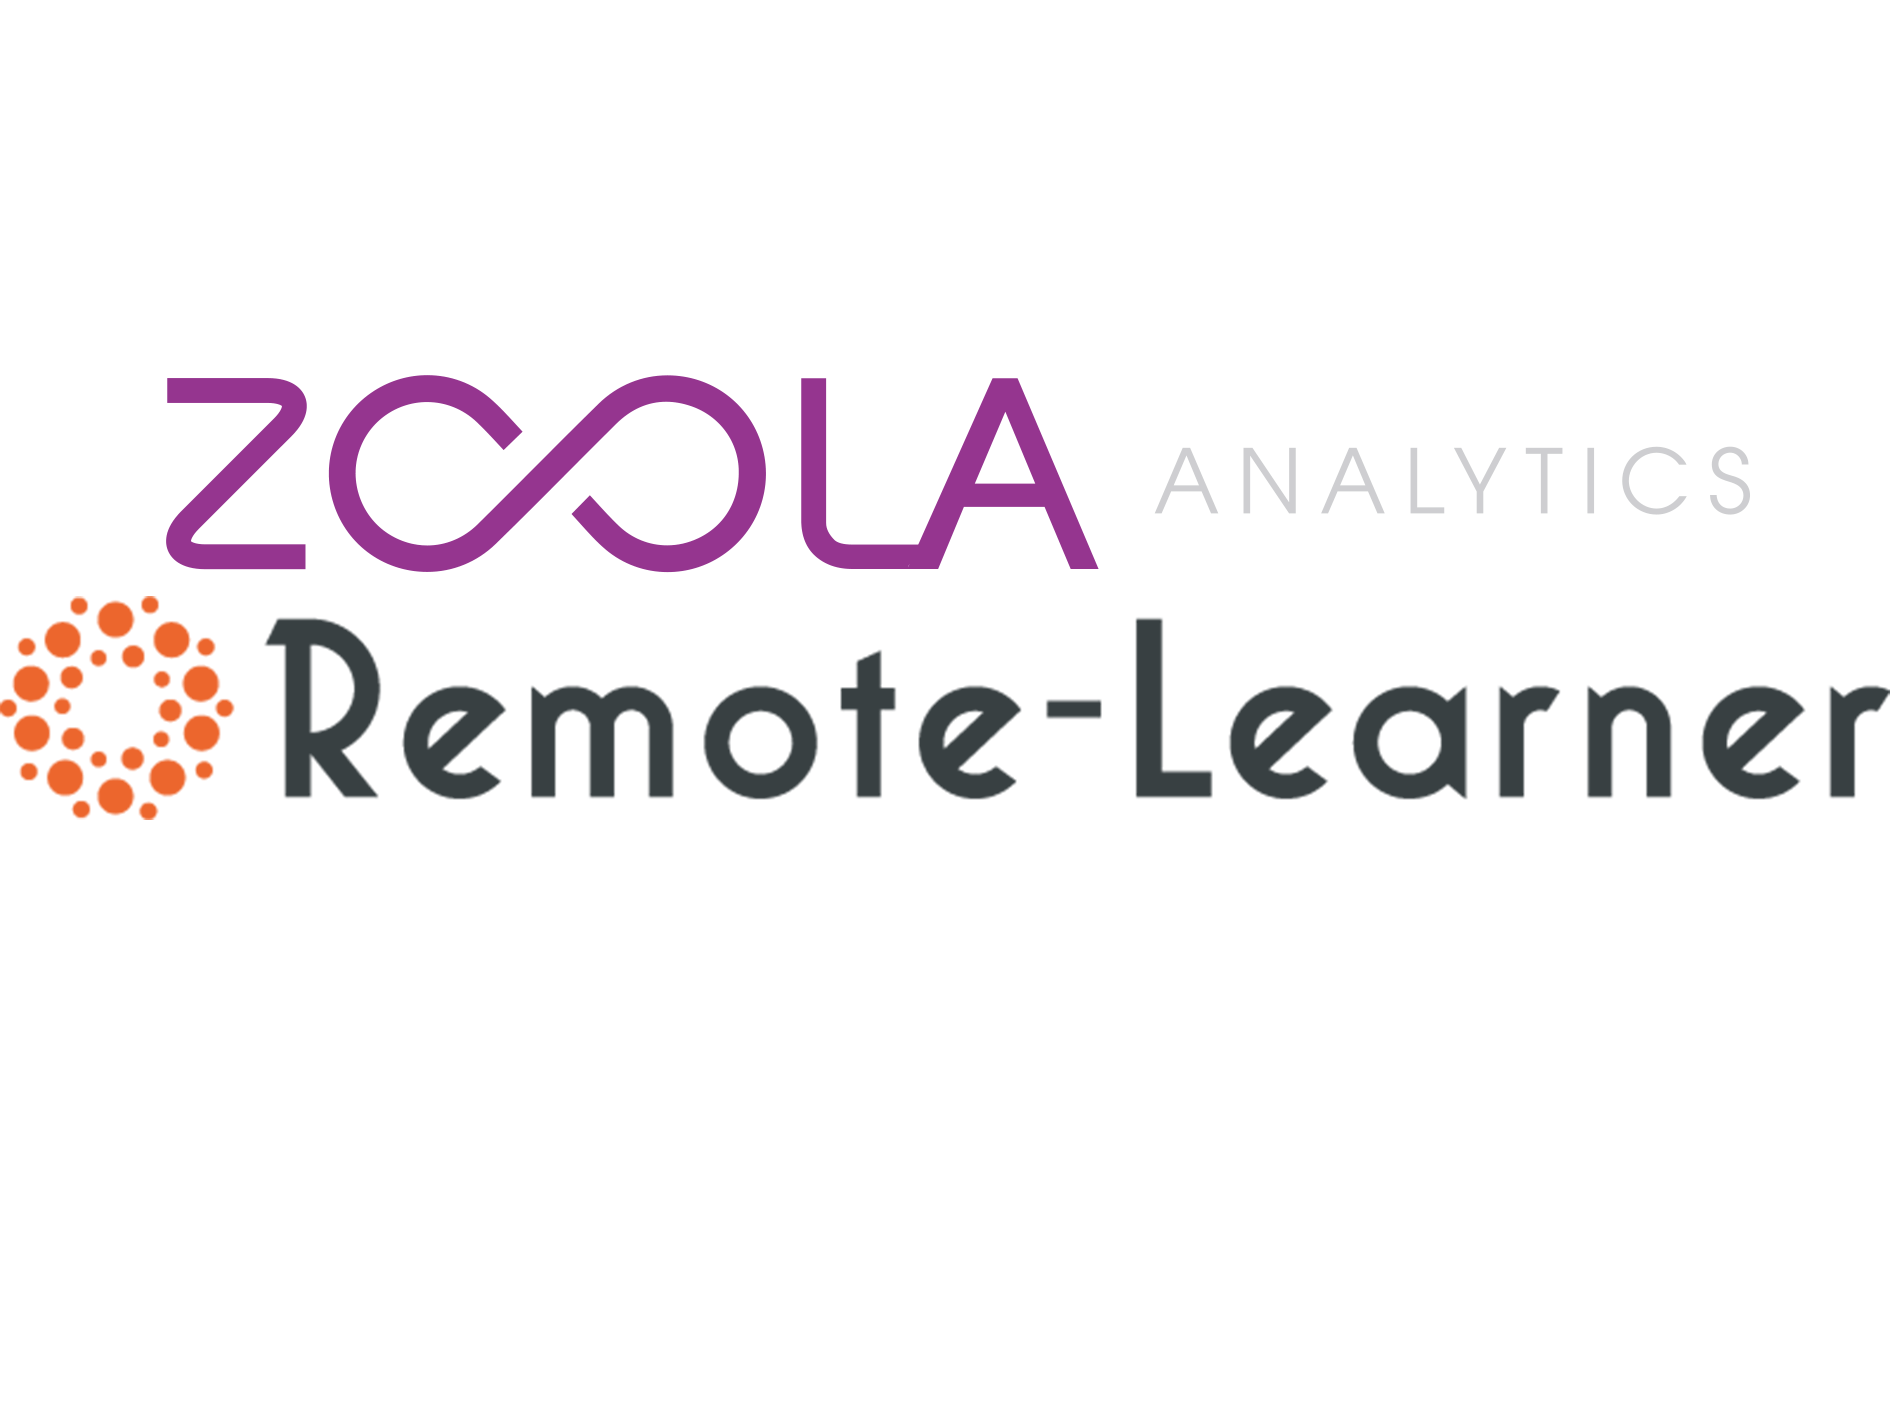 Lambda Solutions' LMS Reporting and Analytics Solution